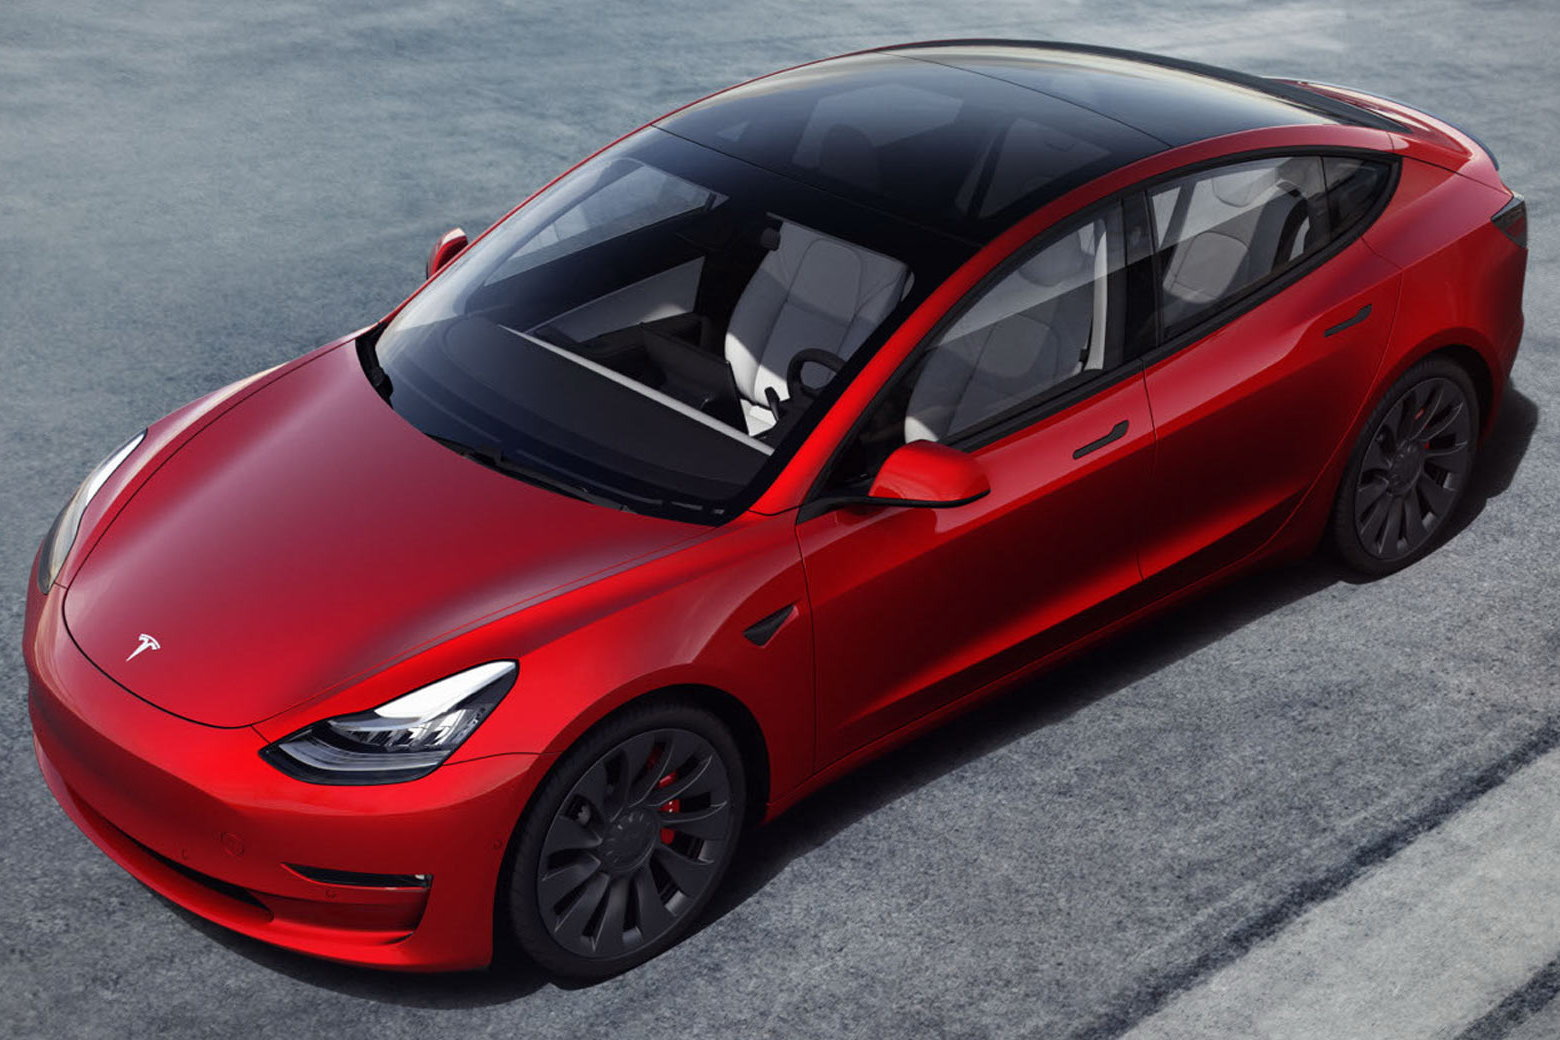 La nuova Model 3 con le varianti Standard Range Plus, Long Range e Performance